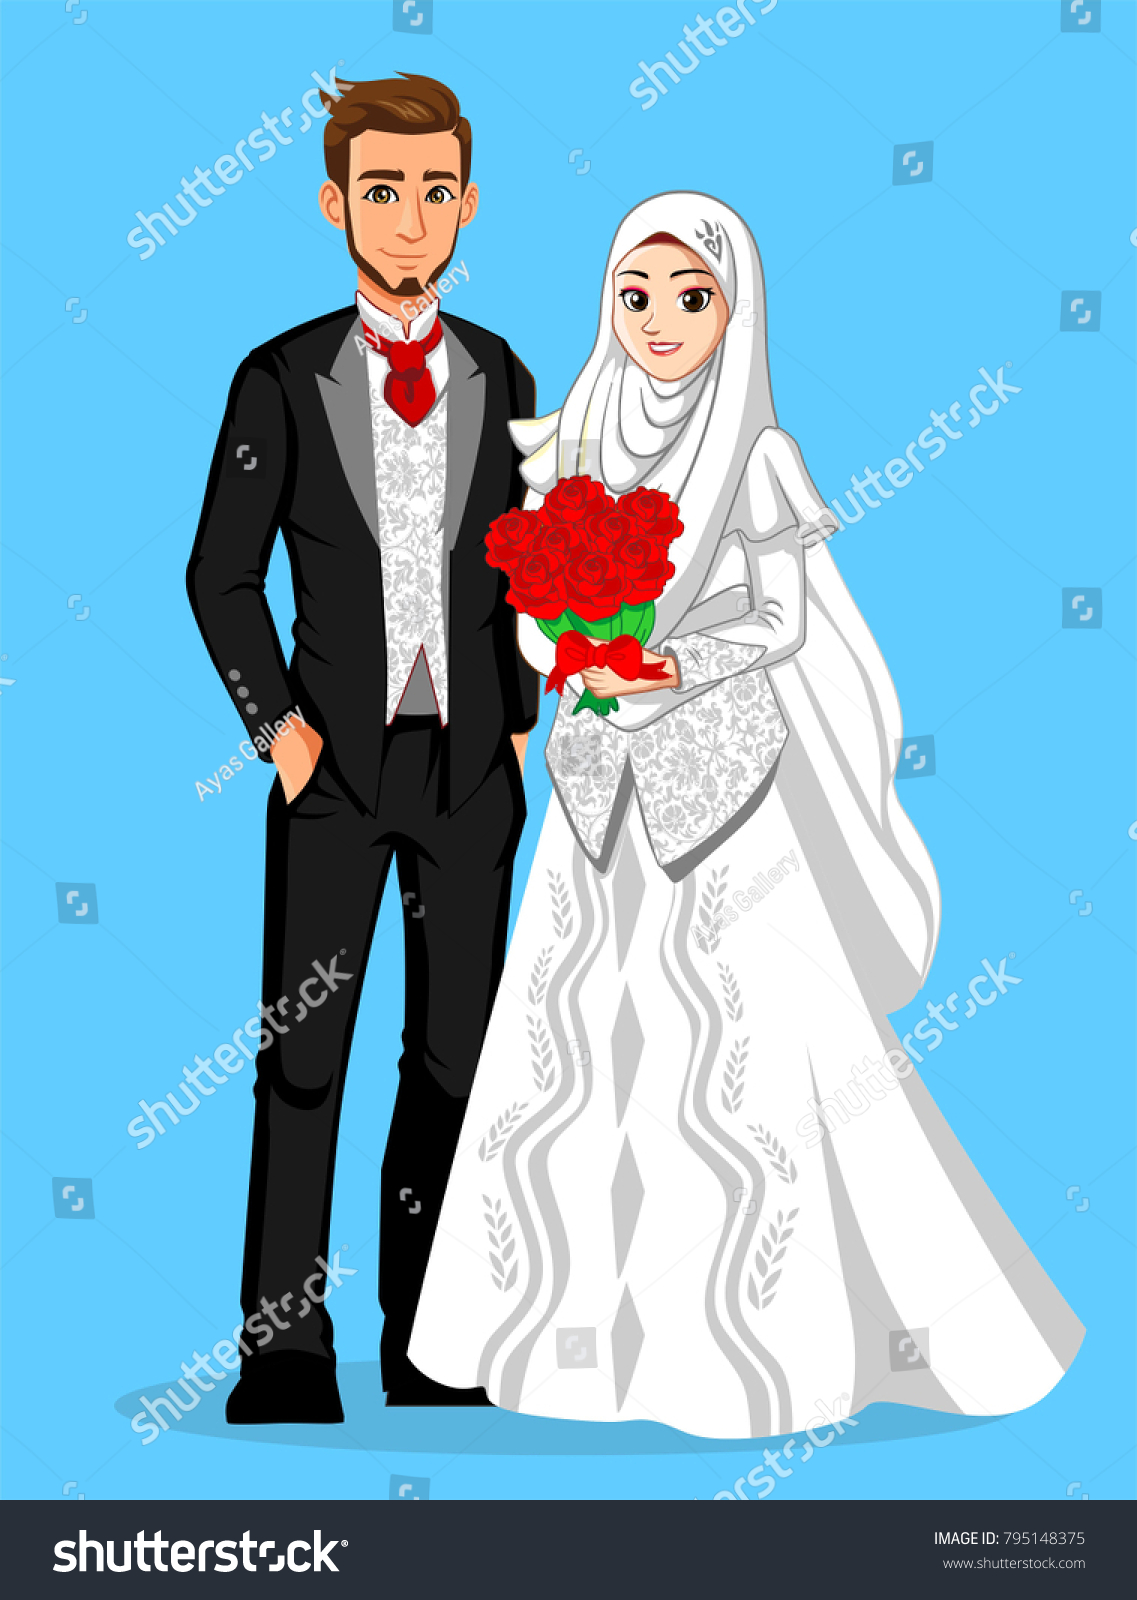 Black White Muslim Wedding Couple Stock Vector 795148375 - Shutterstock